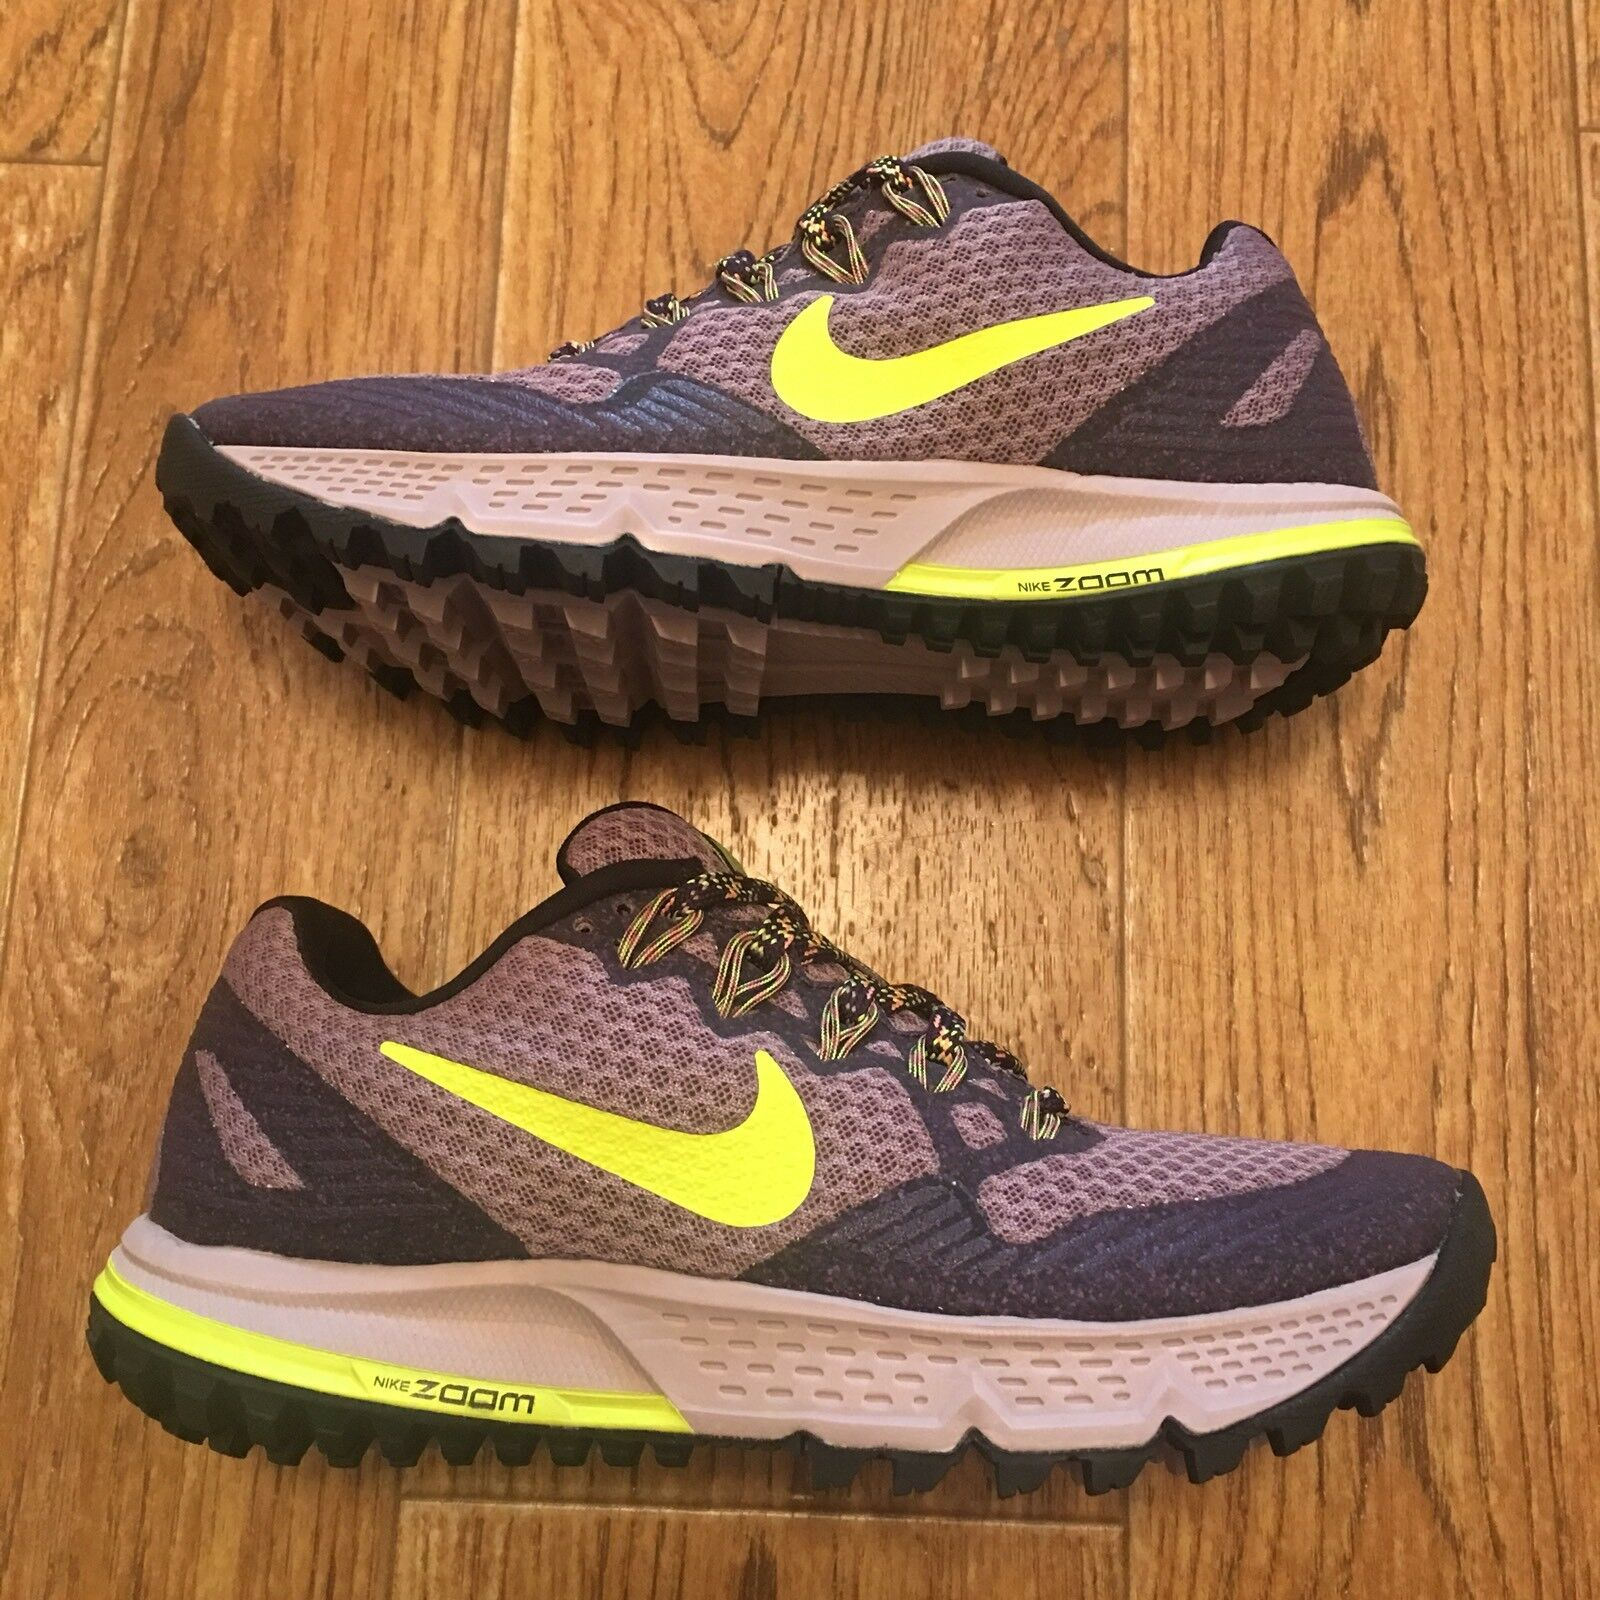 749337-501 749337-501 749337-501 Nike Womens Air Zoom Wildhorse 3 Trail Running Purple Size 5 NEW 4d46f9